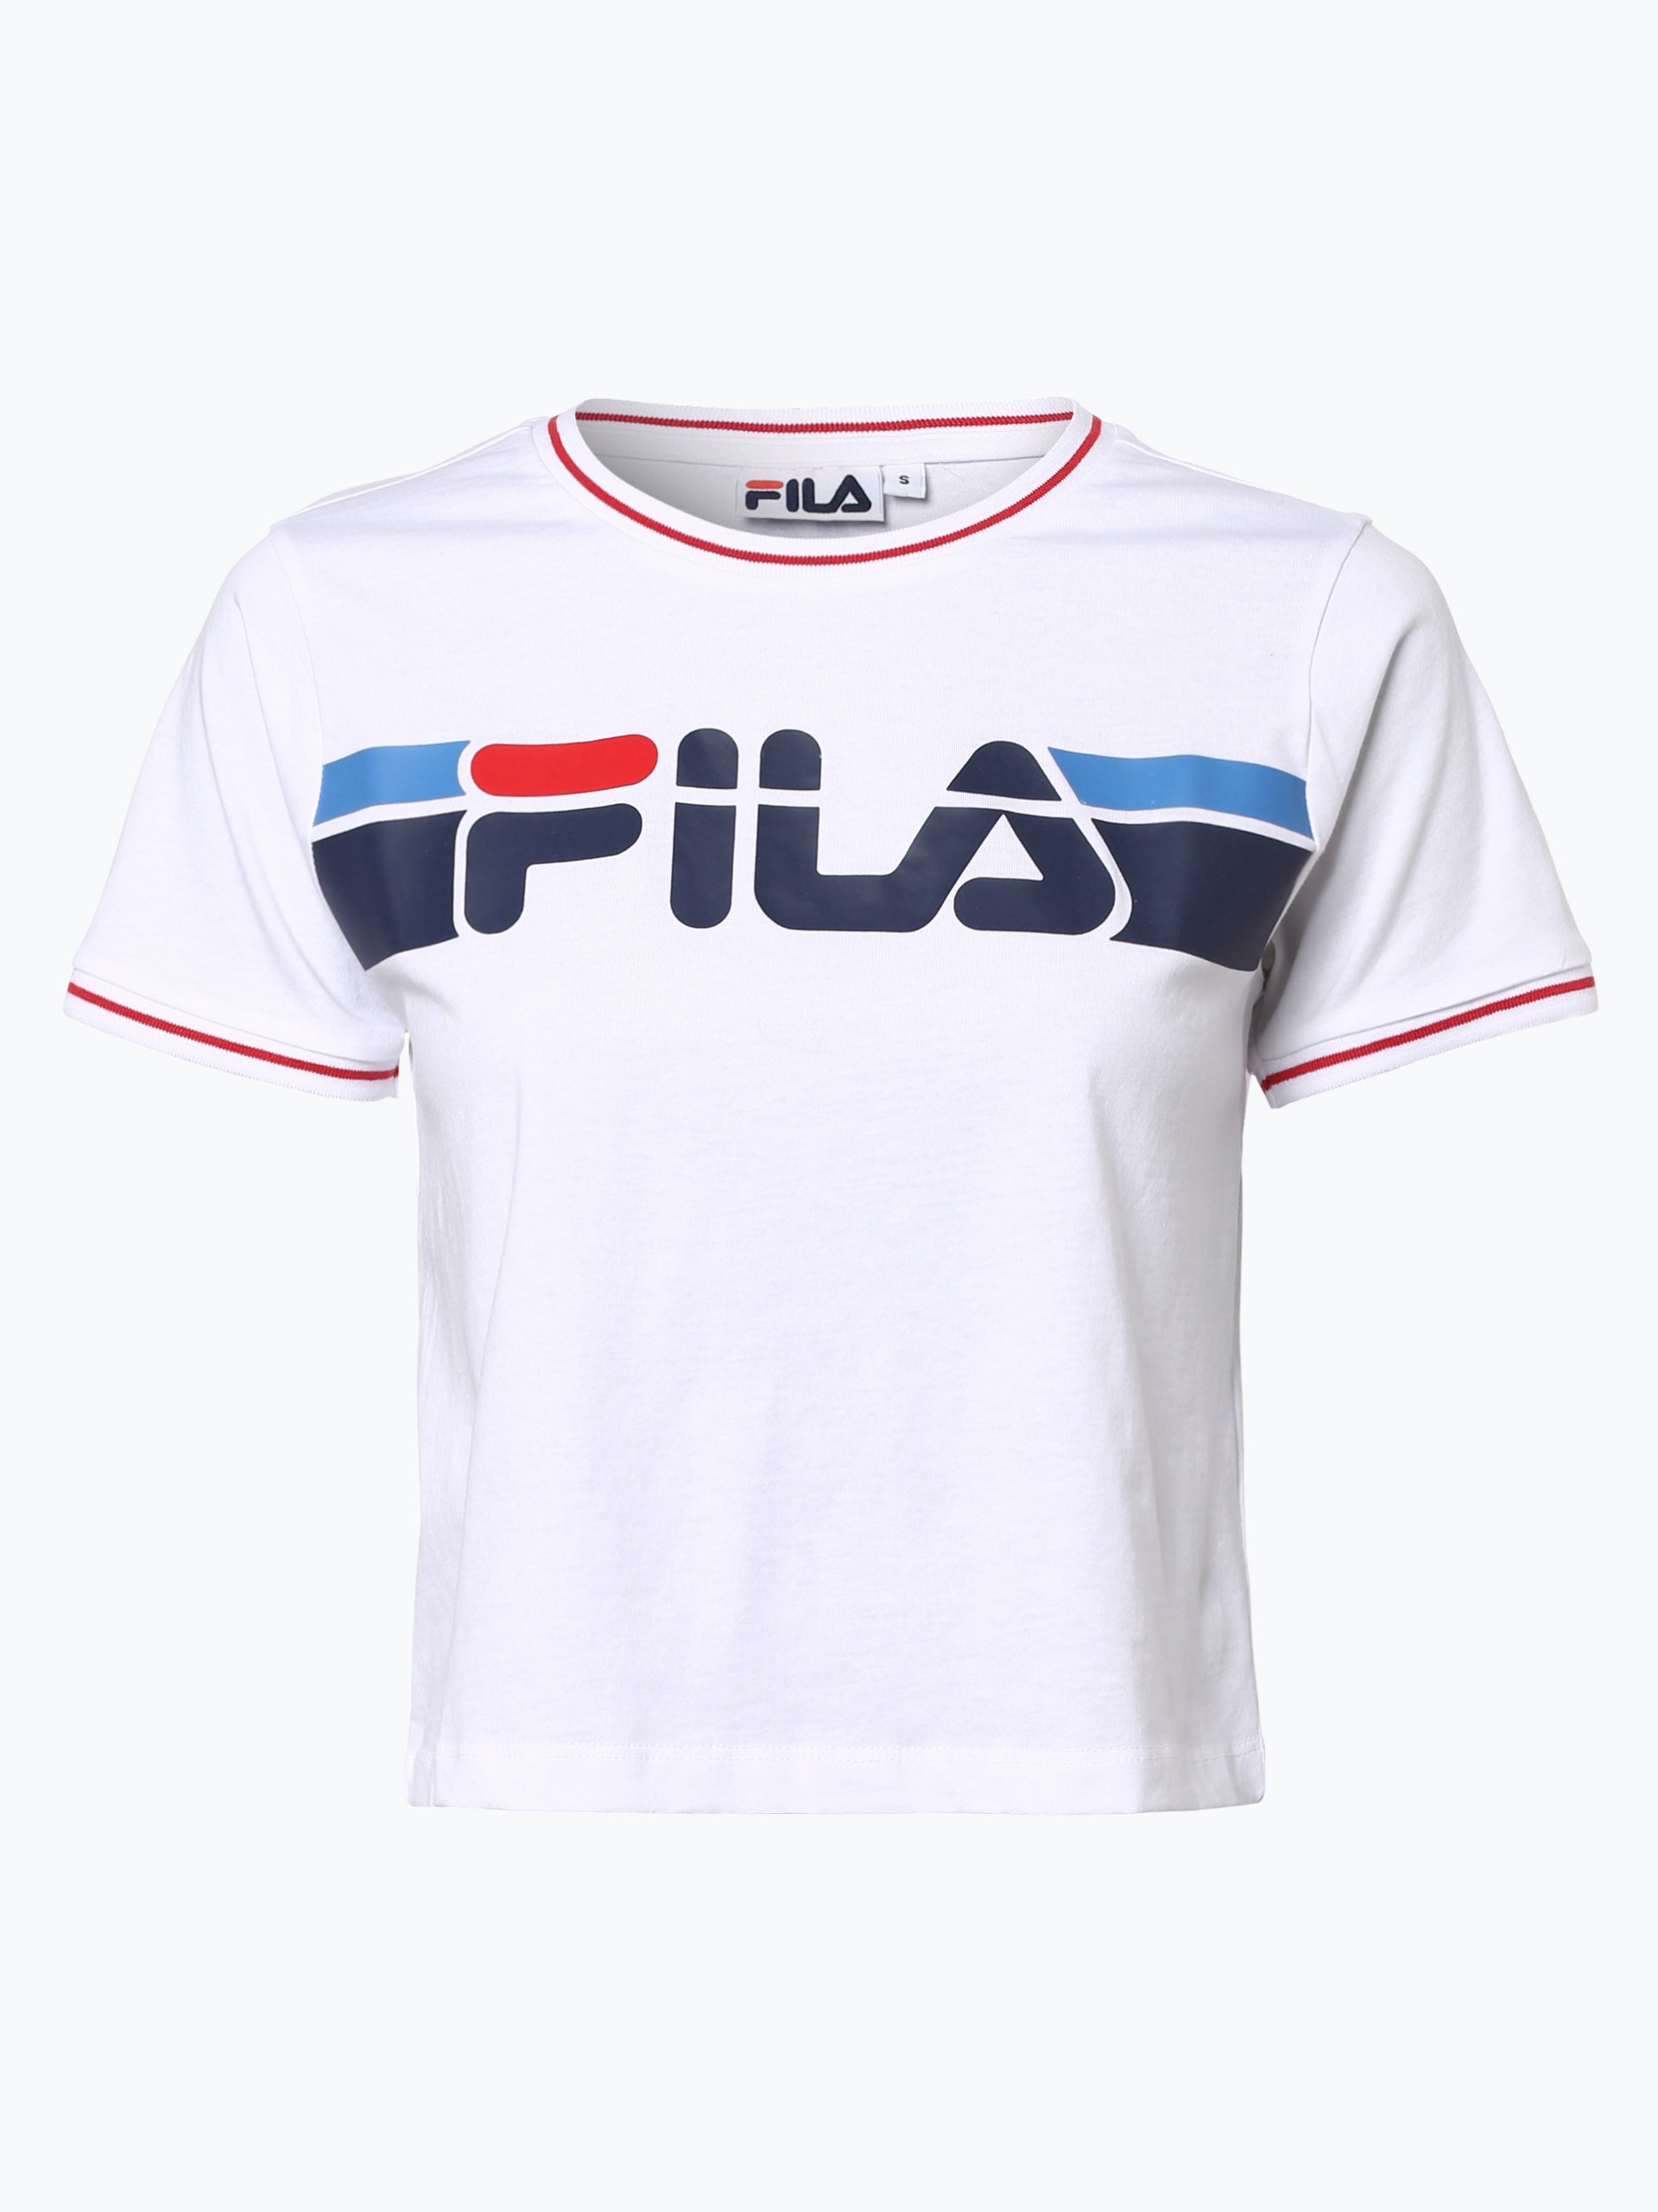 FILA Damen T-Shirt